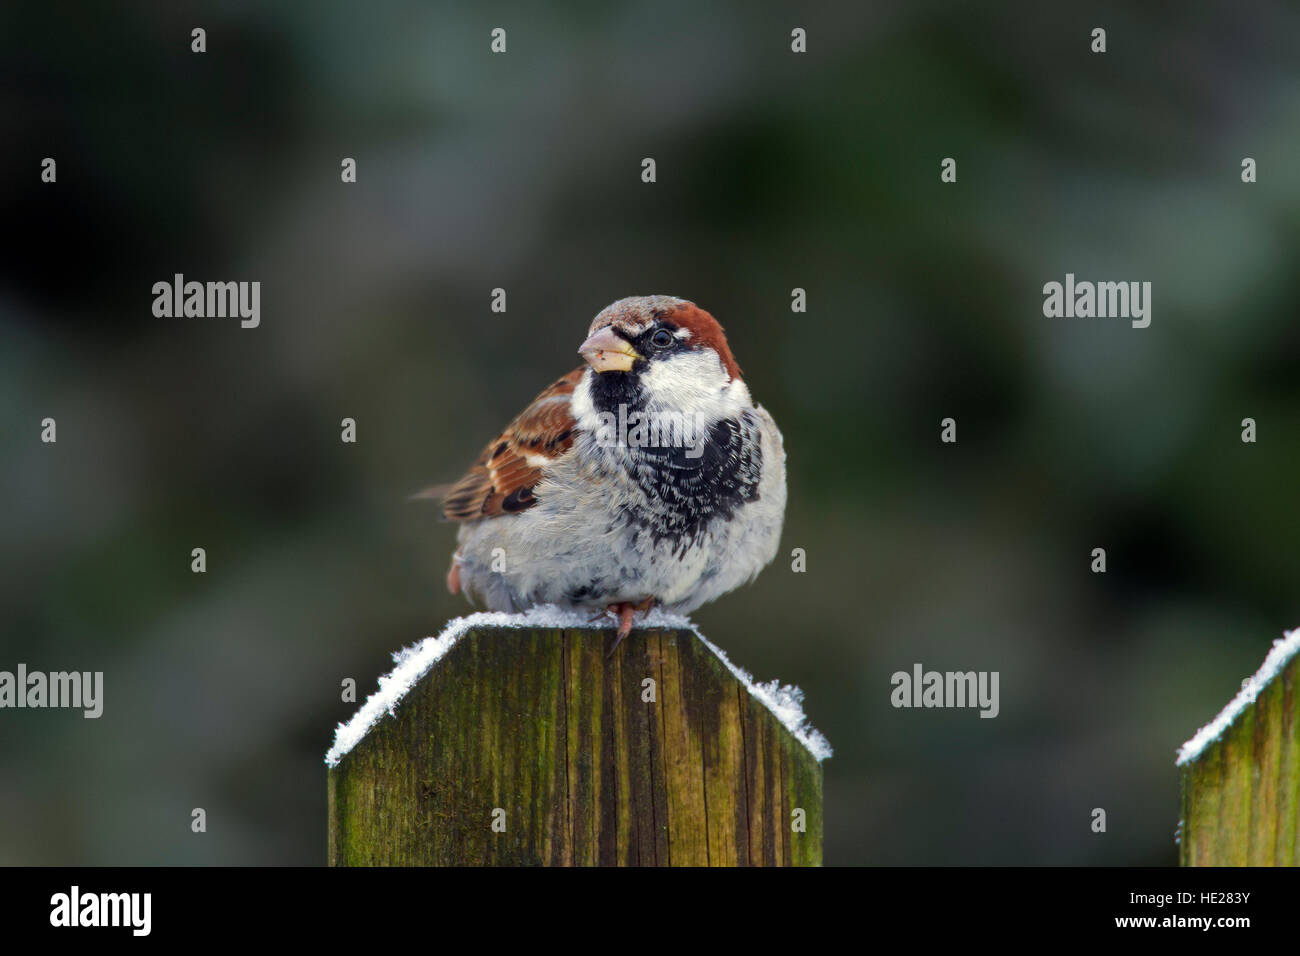 House sparrow (Passer domesticus) male perched on wooden fence post in the snow in winter - Stock Image